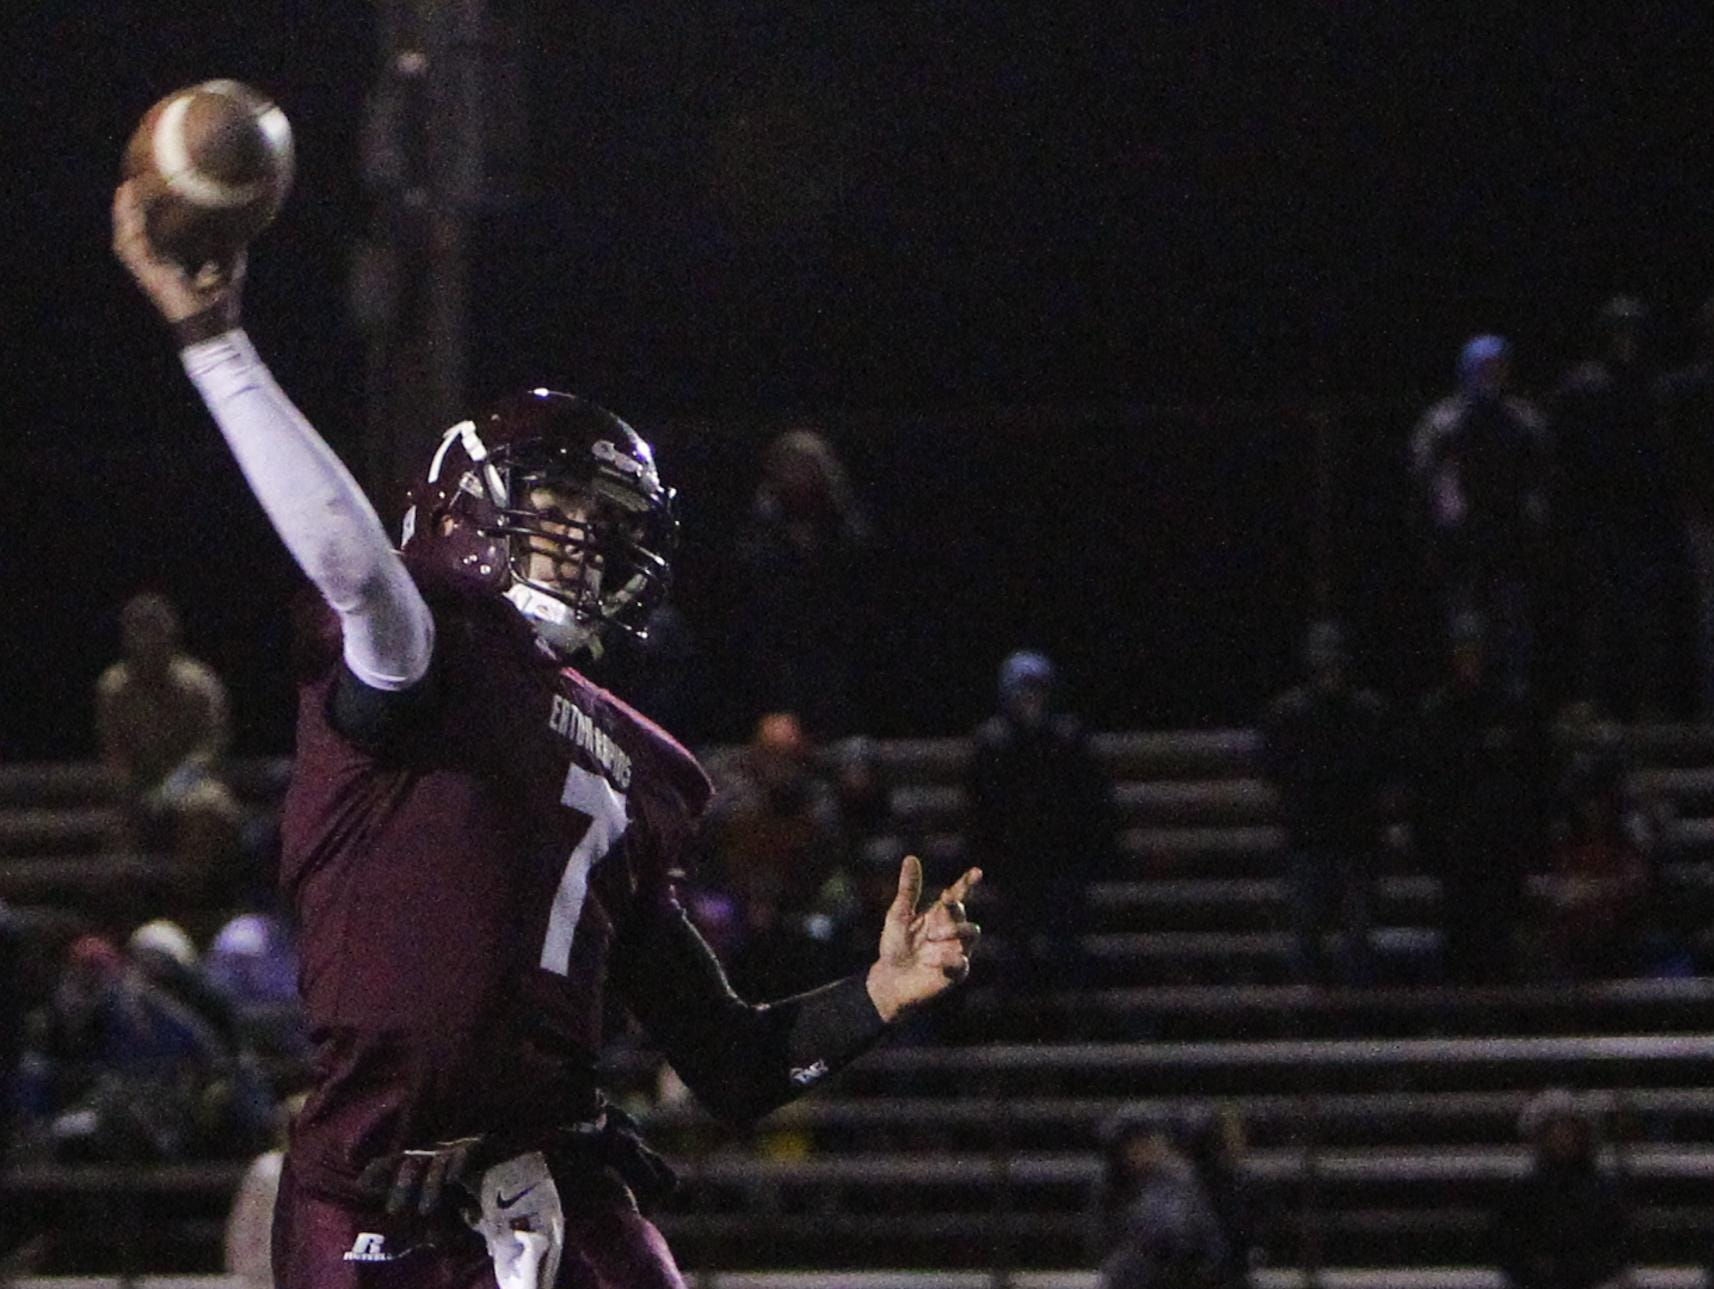 Jared McDaniel set career and single-season school records for passing yards while helping Eaton Rapids to a combined 15 wins and back-to-back playoff appearances as a junior and senior.